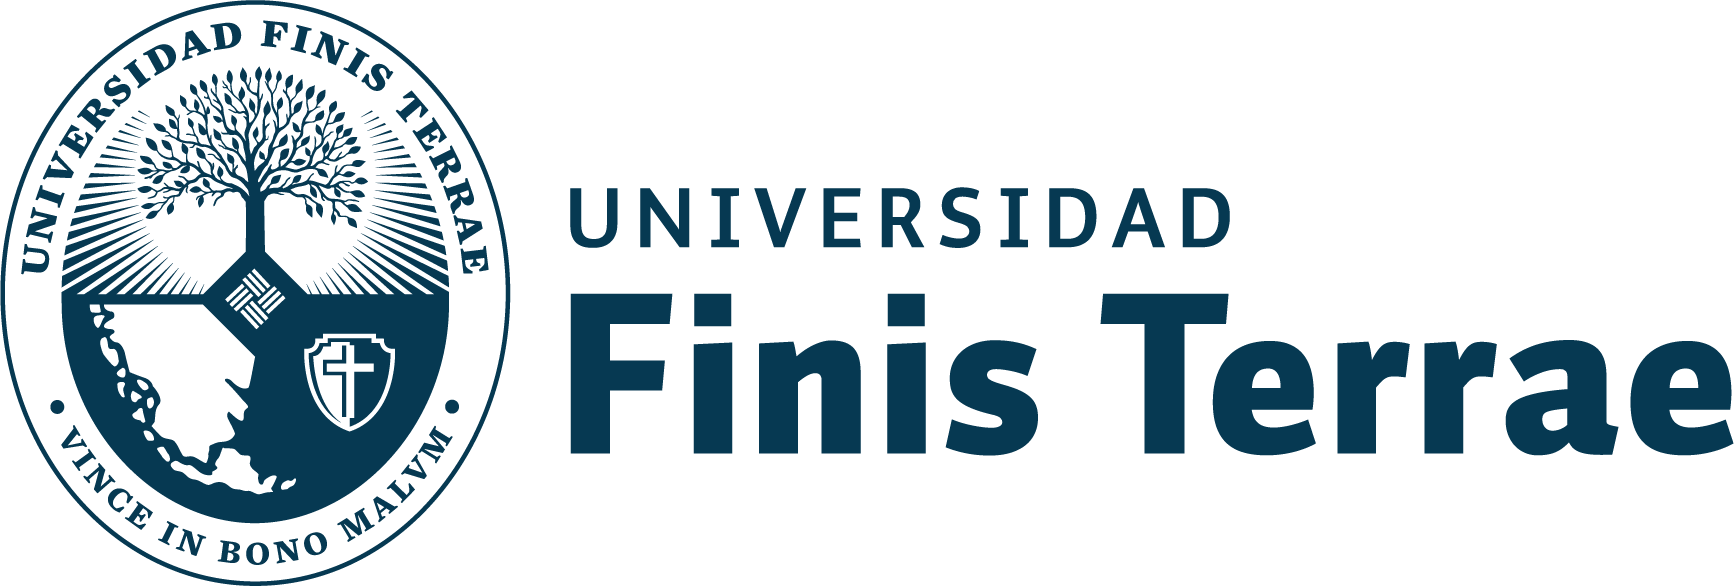 Estatutos Fundación Universidad Finis Terrae